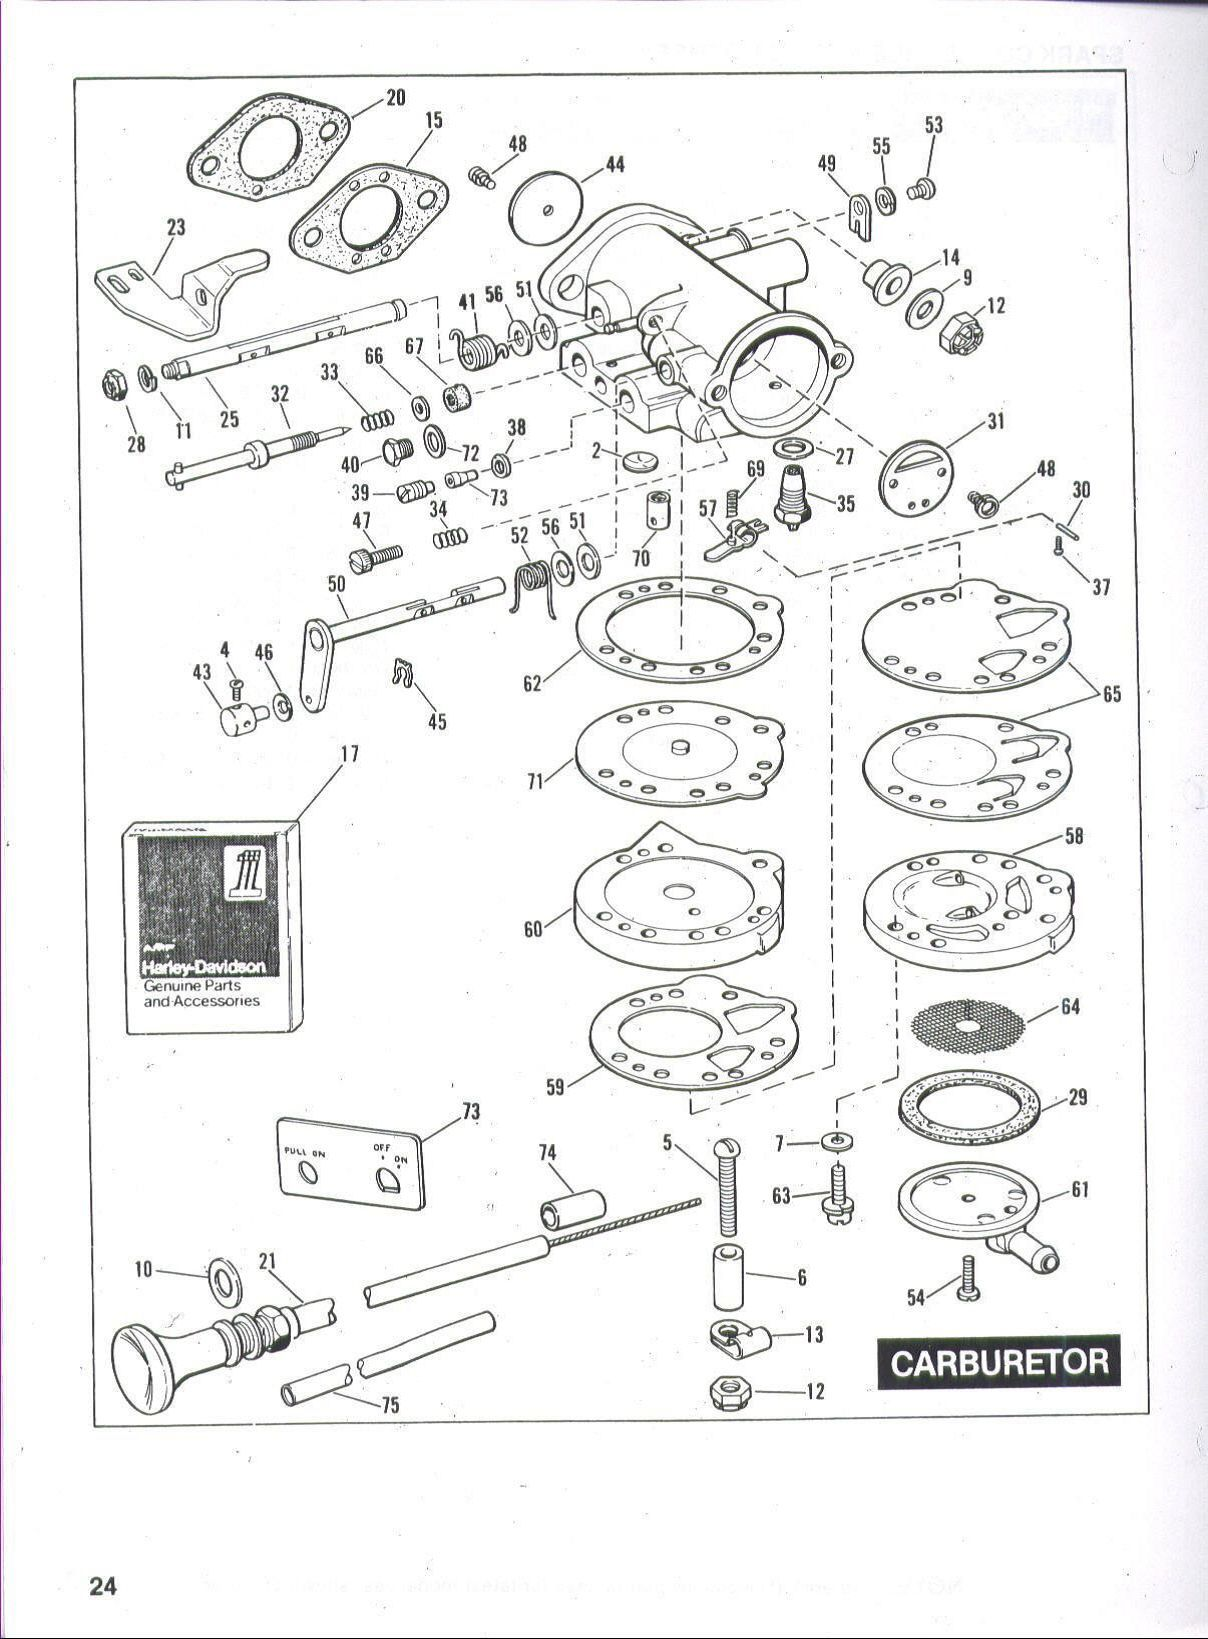 harley davidson golf cart engine diagram harley-davidson golf cart carburetor diagram | utv stuff ... columbia harley davidson golf cart wiring diagram #7